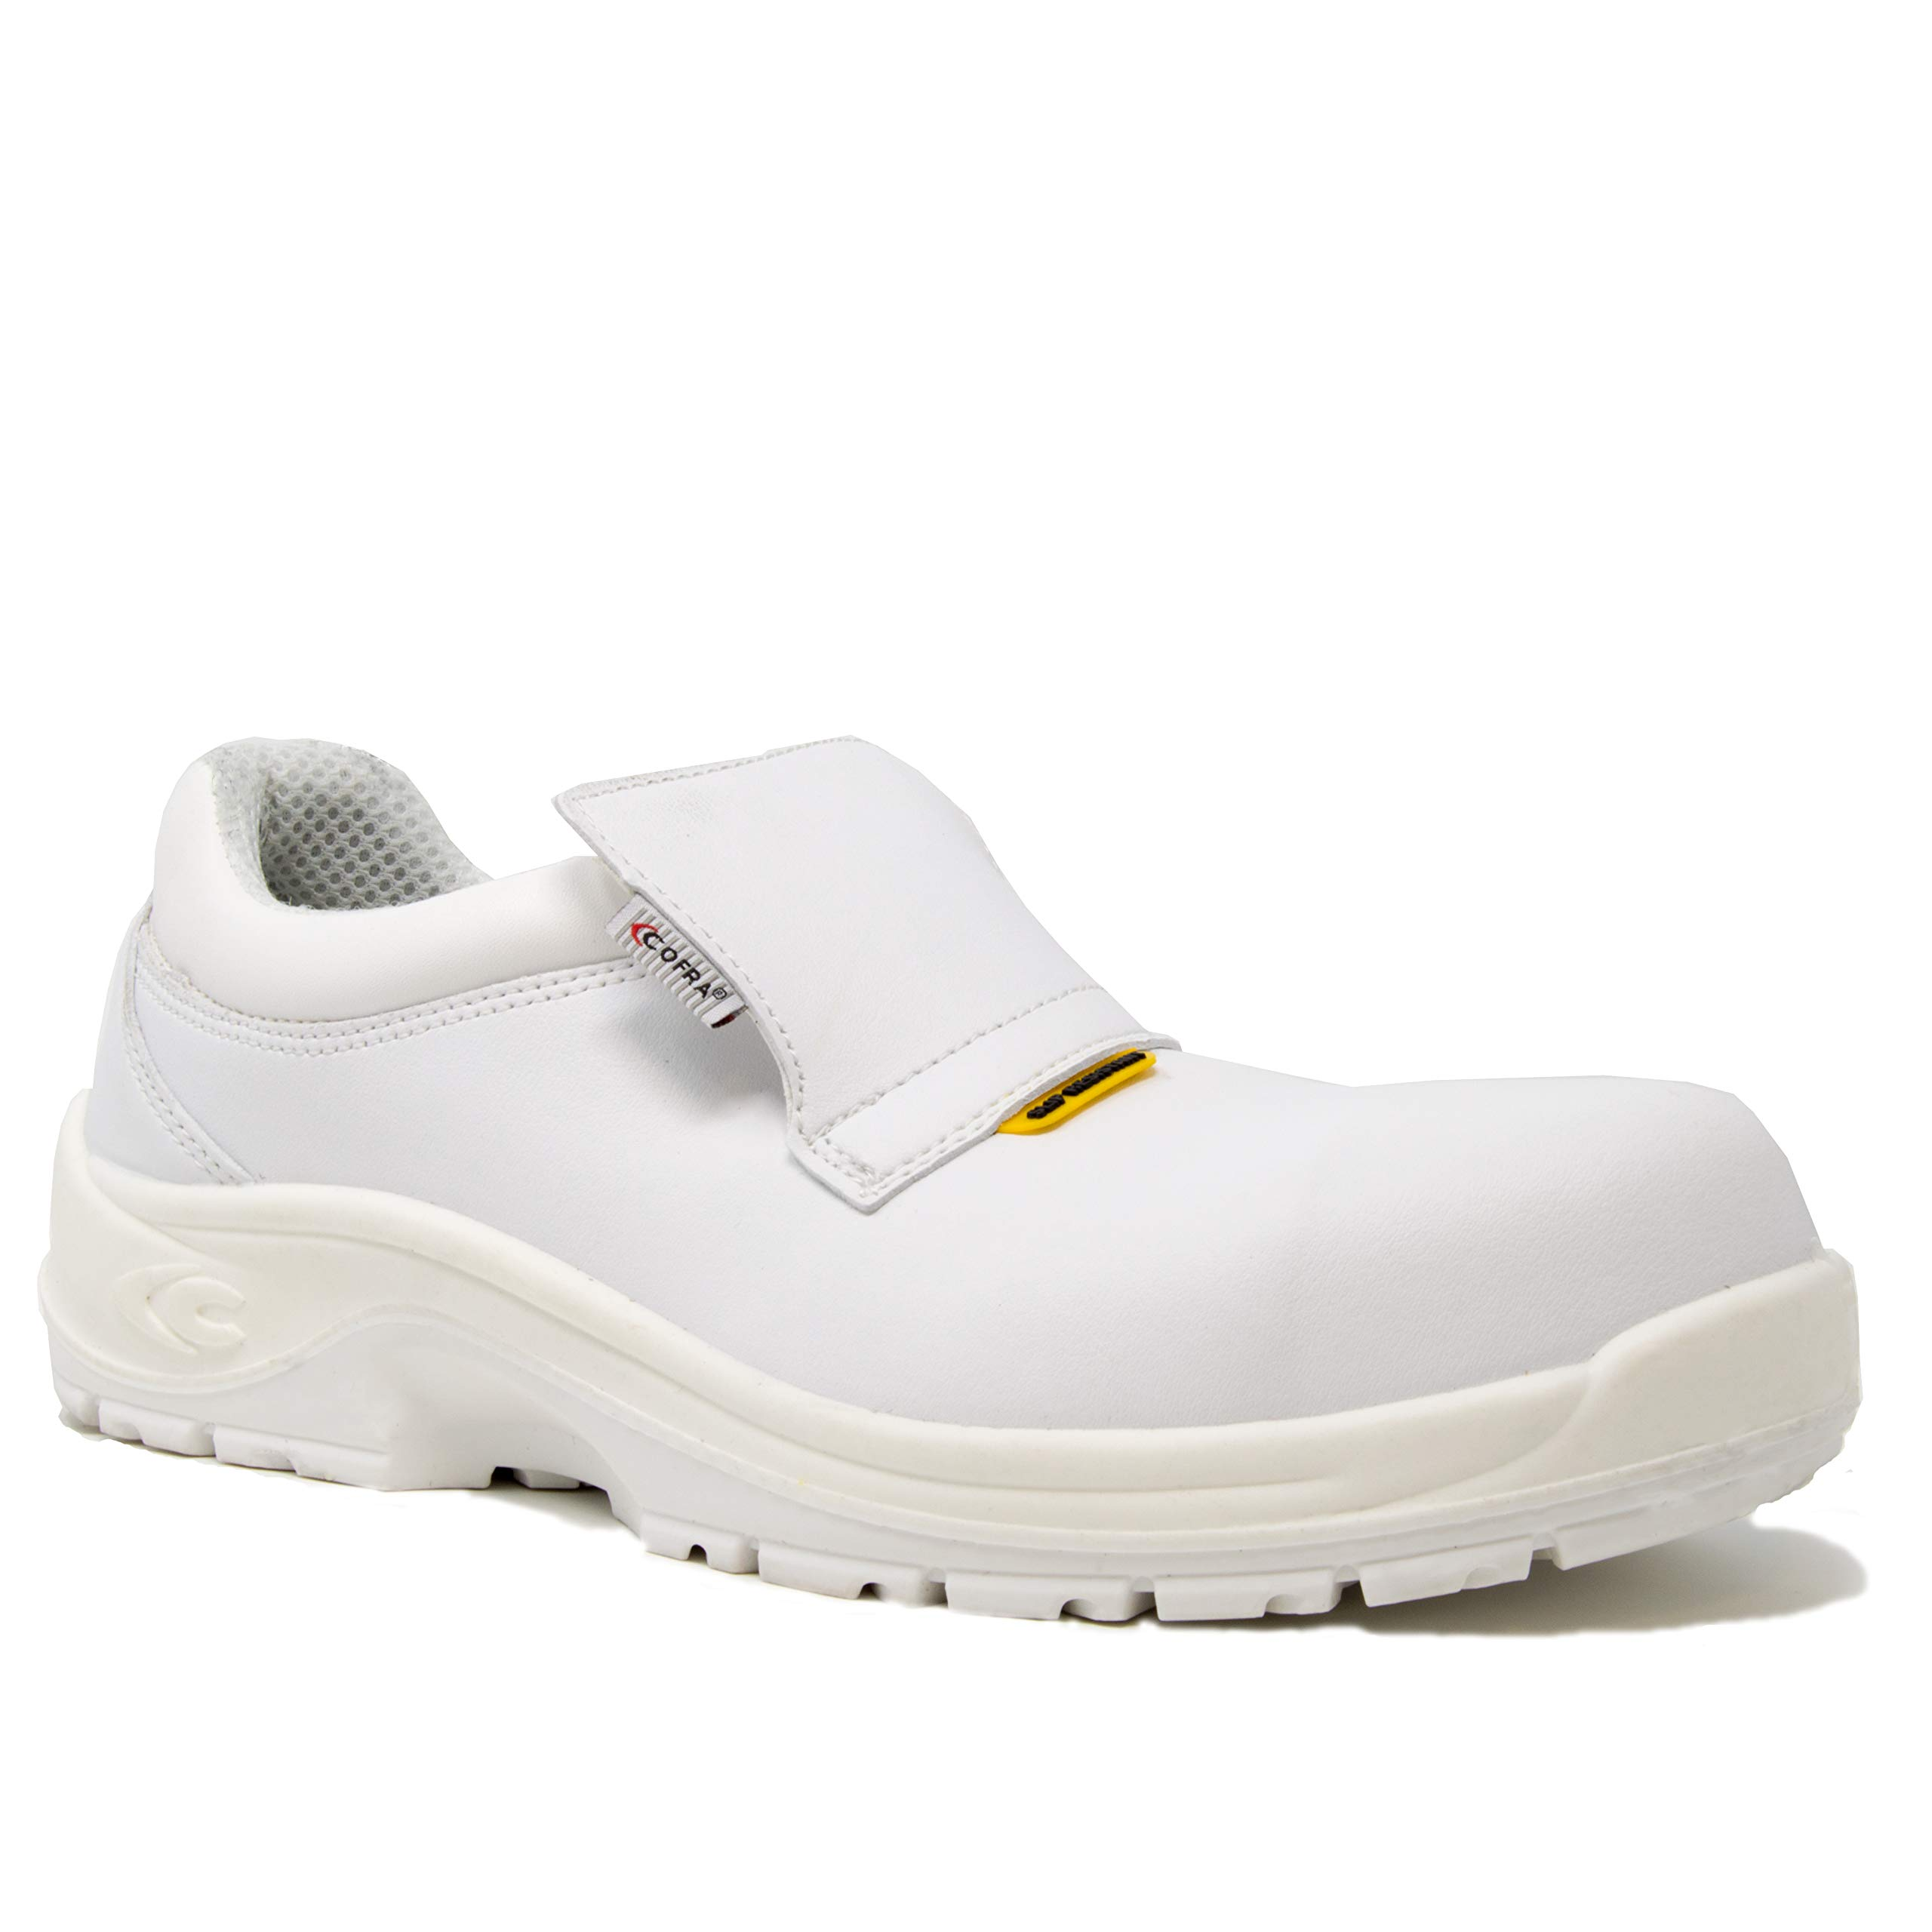 COFRA Chemical Resistant Work Shoes - STEAM Slip Resistant Footwear with Composite Safety Toe & Water Repellent Upper - Size 7